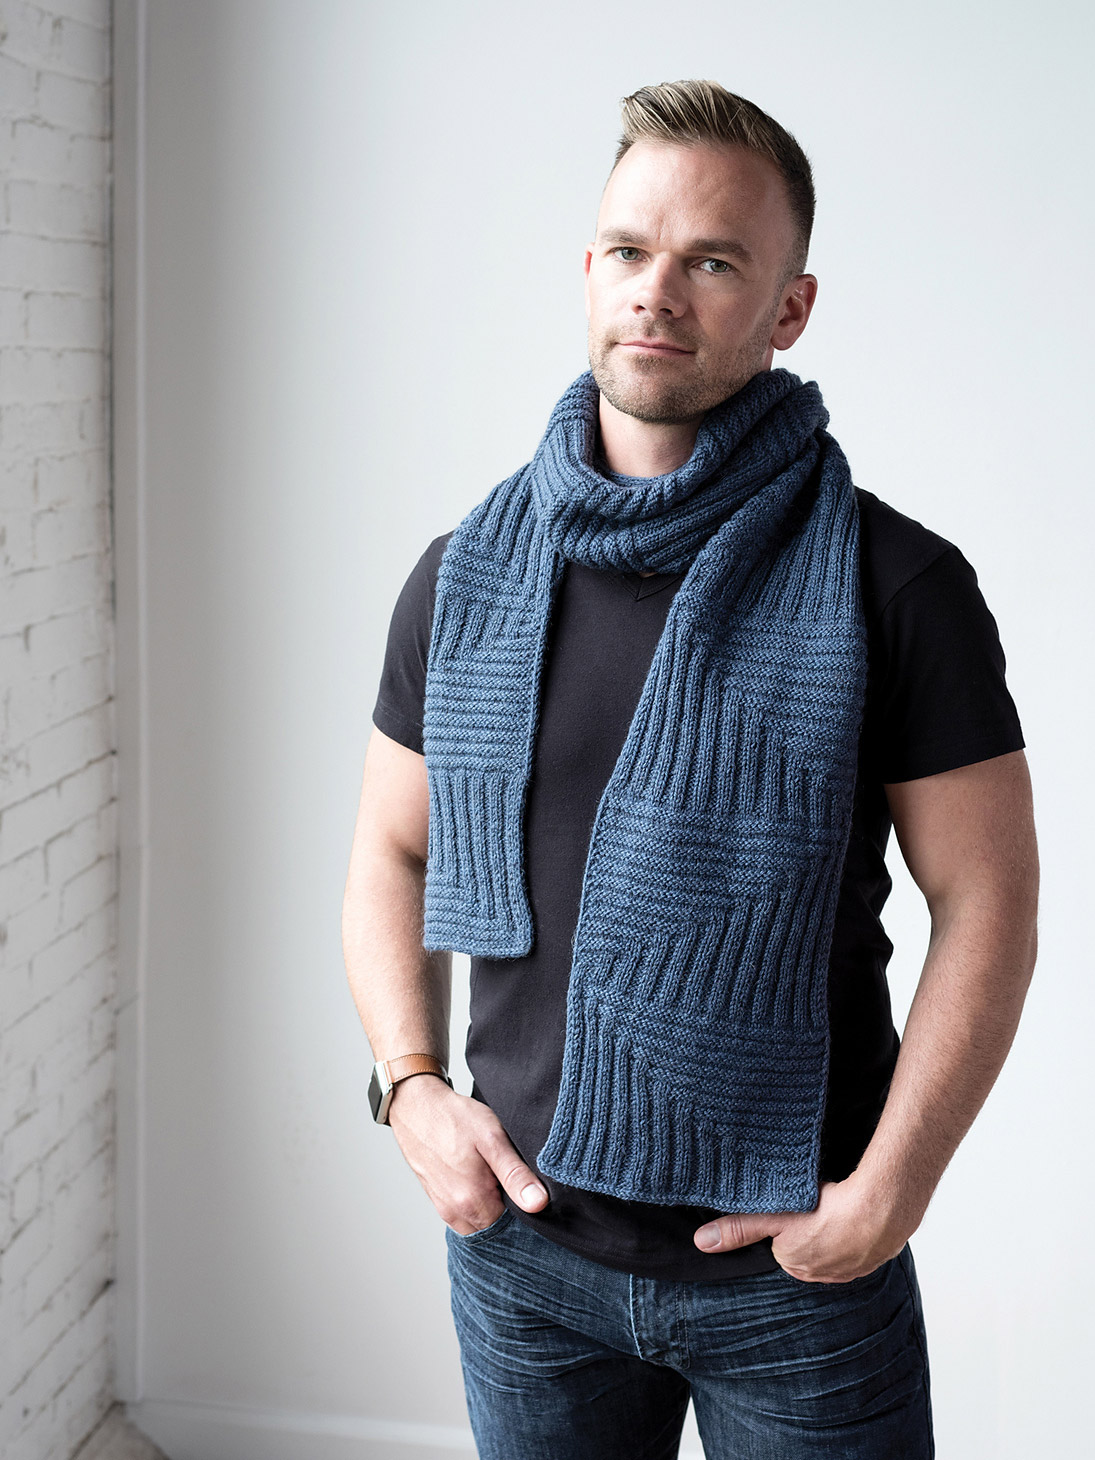 man wears a blue scarf wrapped once around his neck. Scarf is textured with blocks of horizontal and vertical stripes that meet to create diagonals